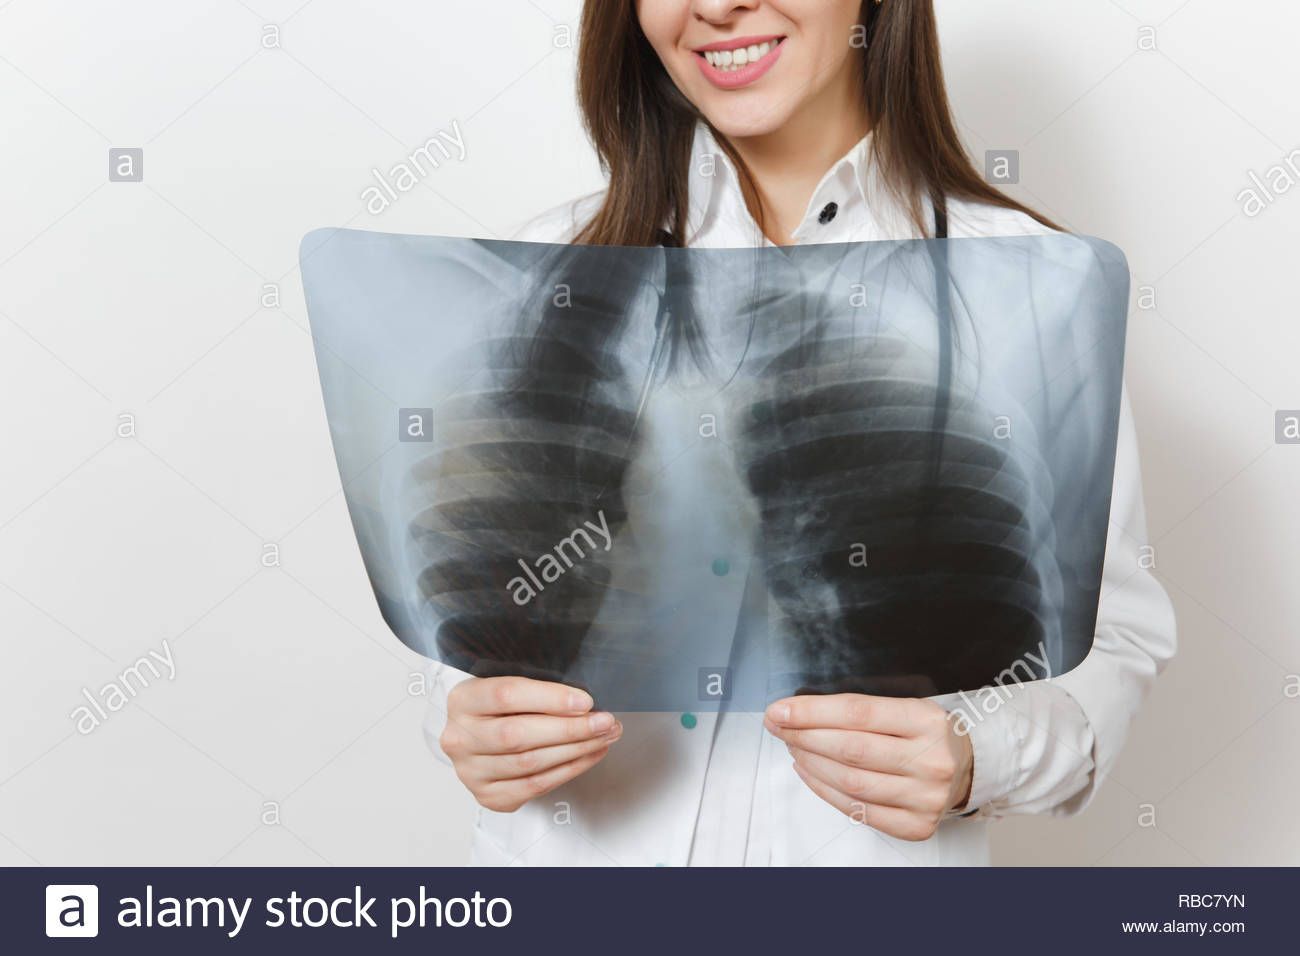 Close up cropped doctor woman with X-ray of lungs, fluorography, roentgen isolated on white background. Female doctor in medical gown stethoscope. Healthcare personnel, medicine concept. Pneumonia. - Stock Image